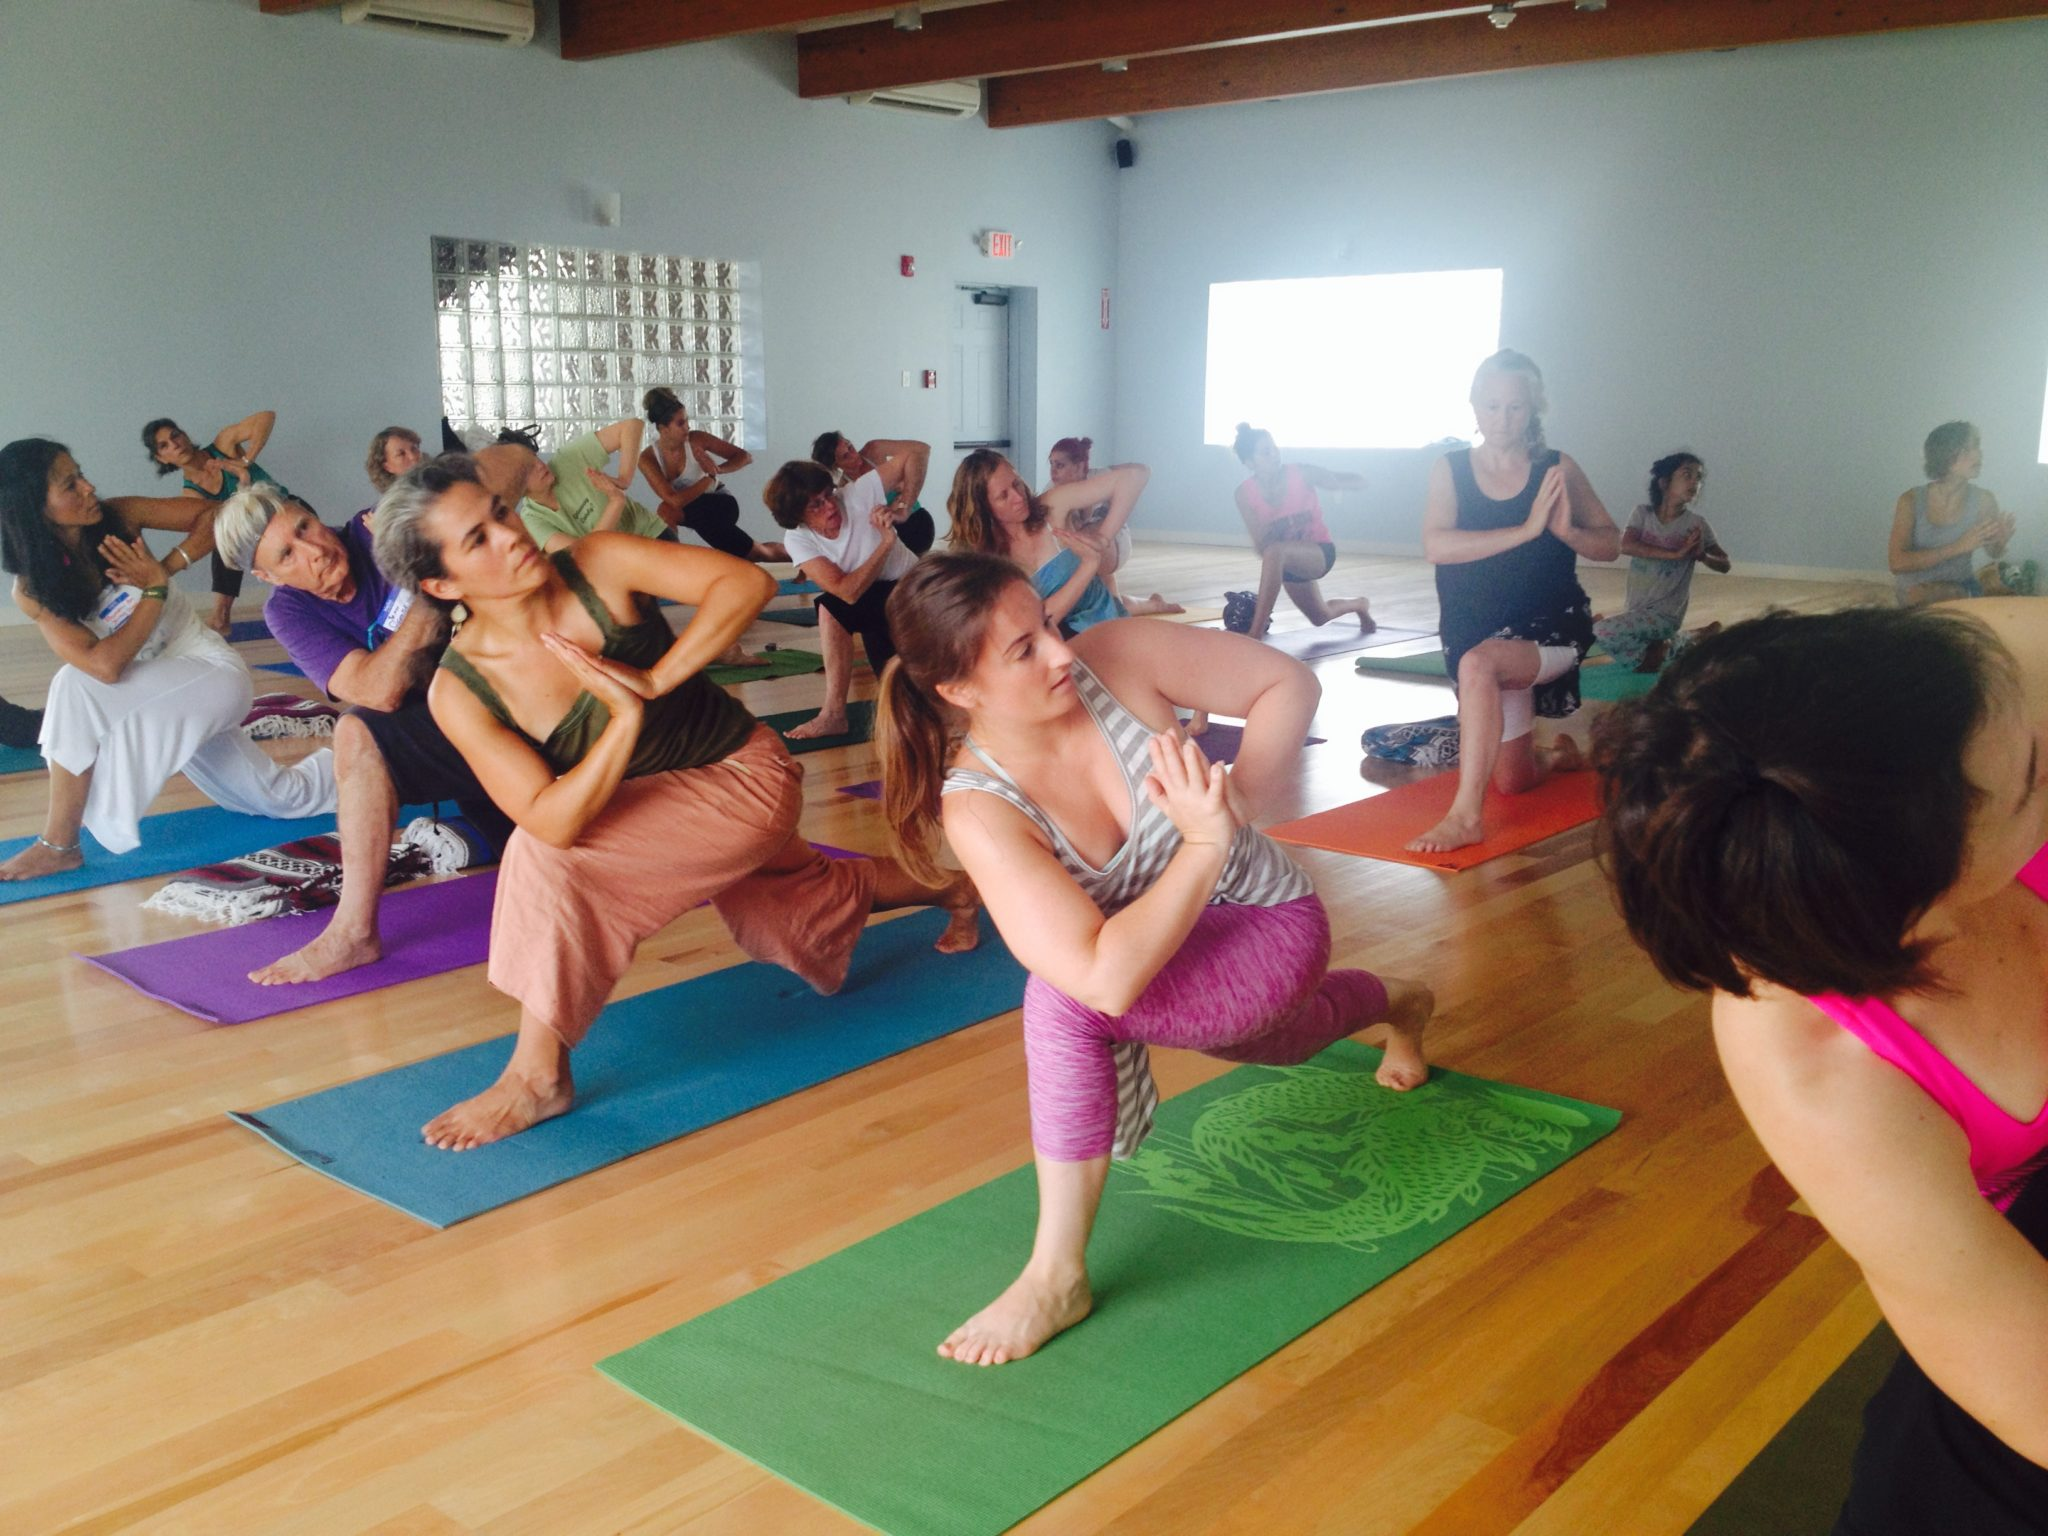 6 Things You Need To Design An Awesome Yoga Class